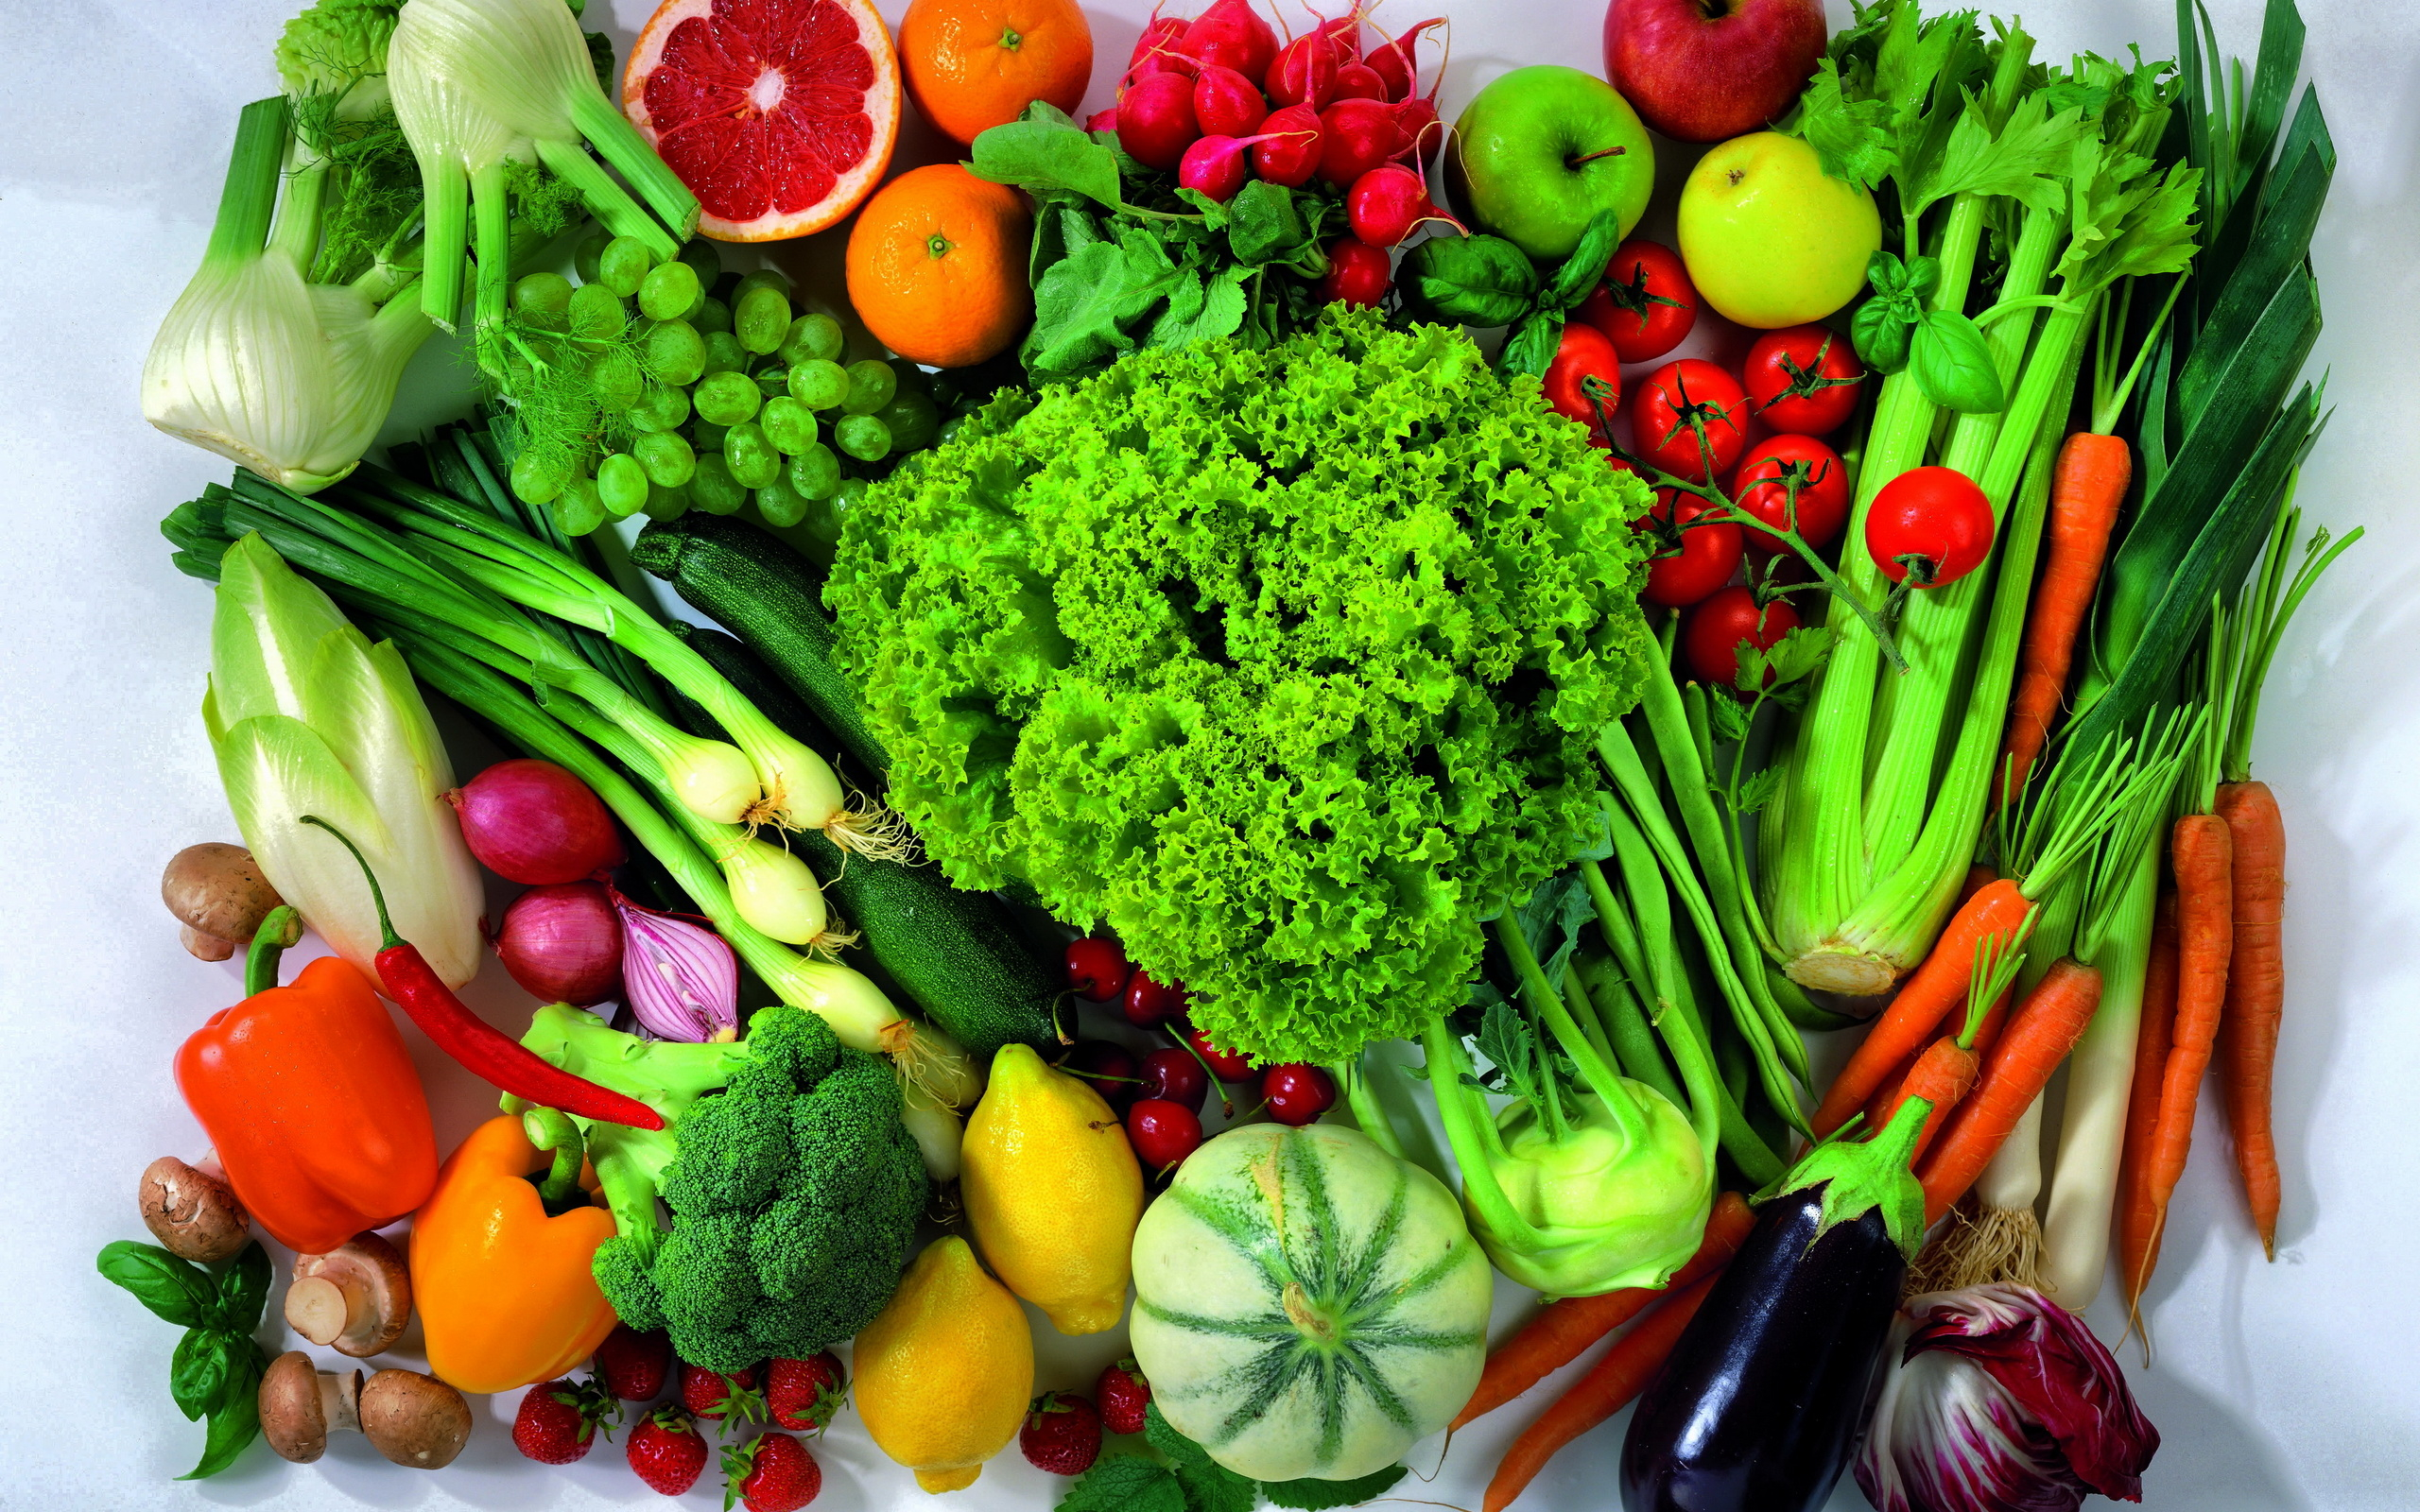 Fruit and vegetable mix Desktop wallpapers 1280x800 2560x1600